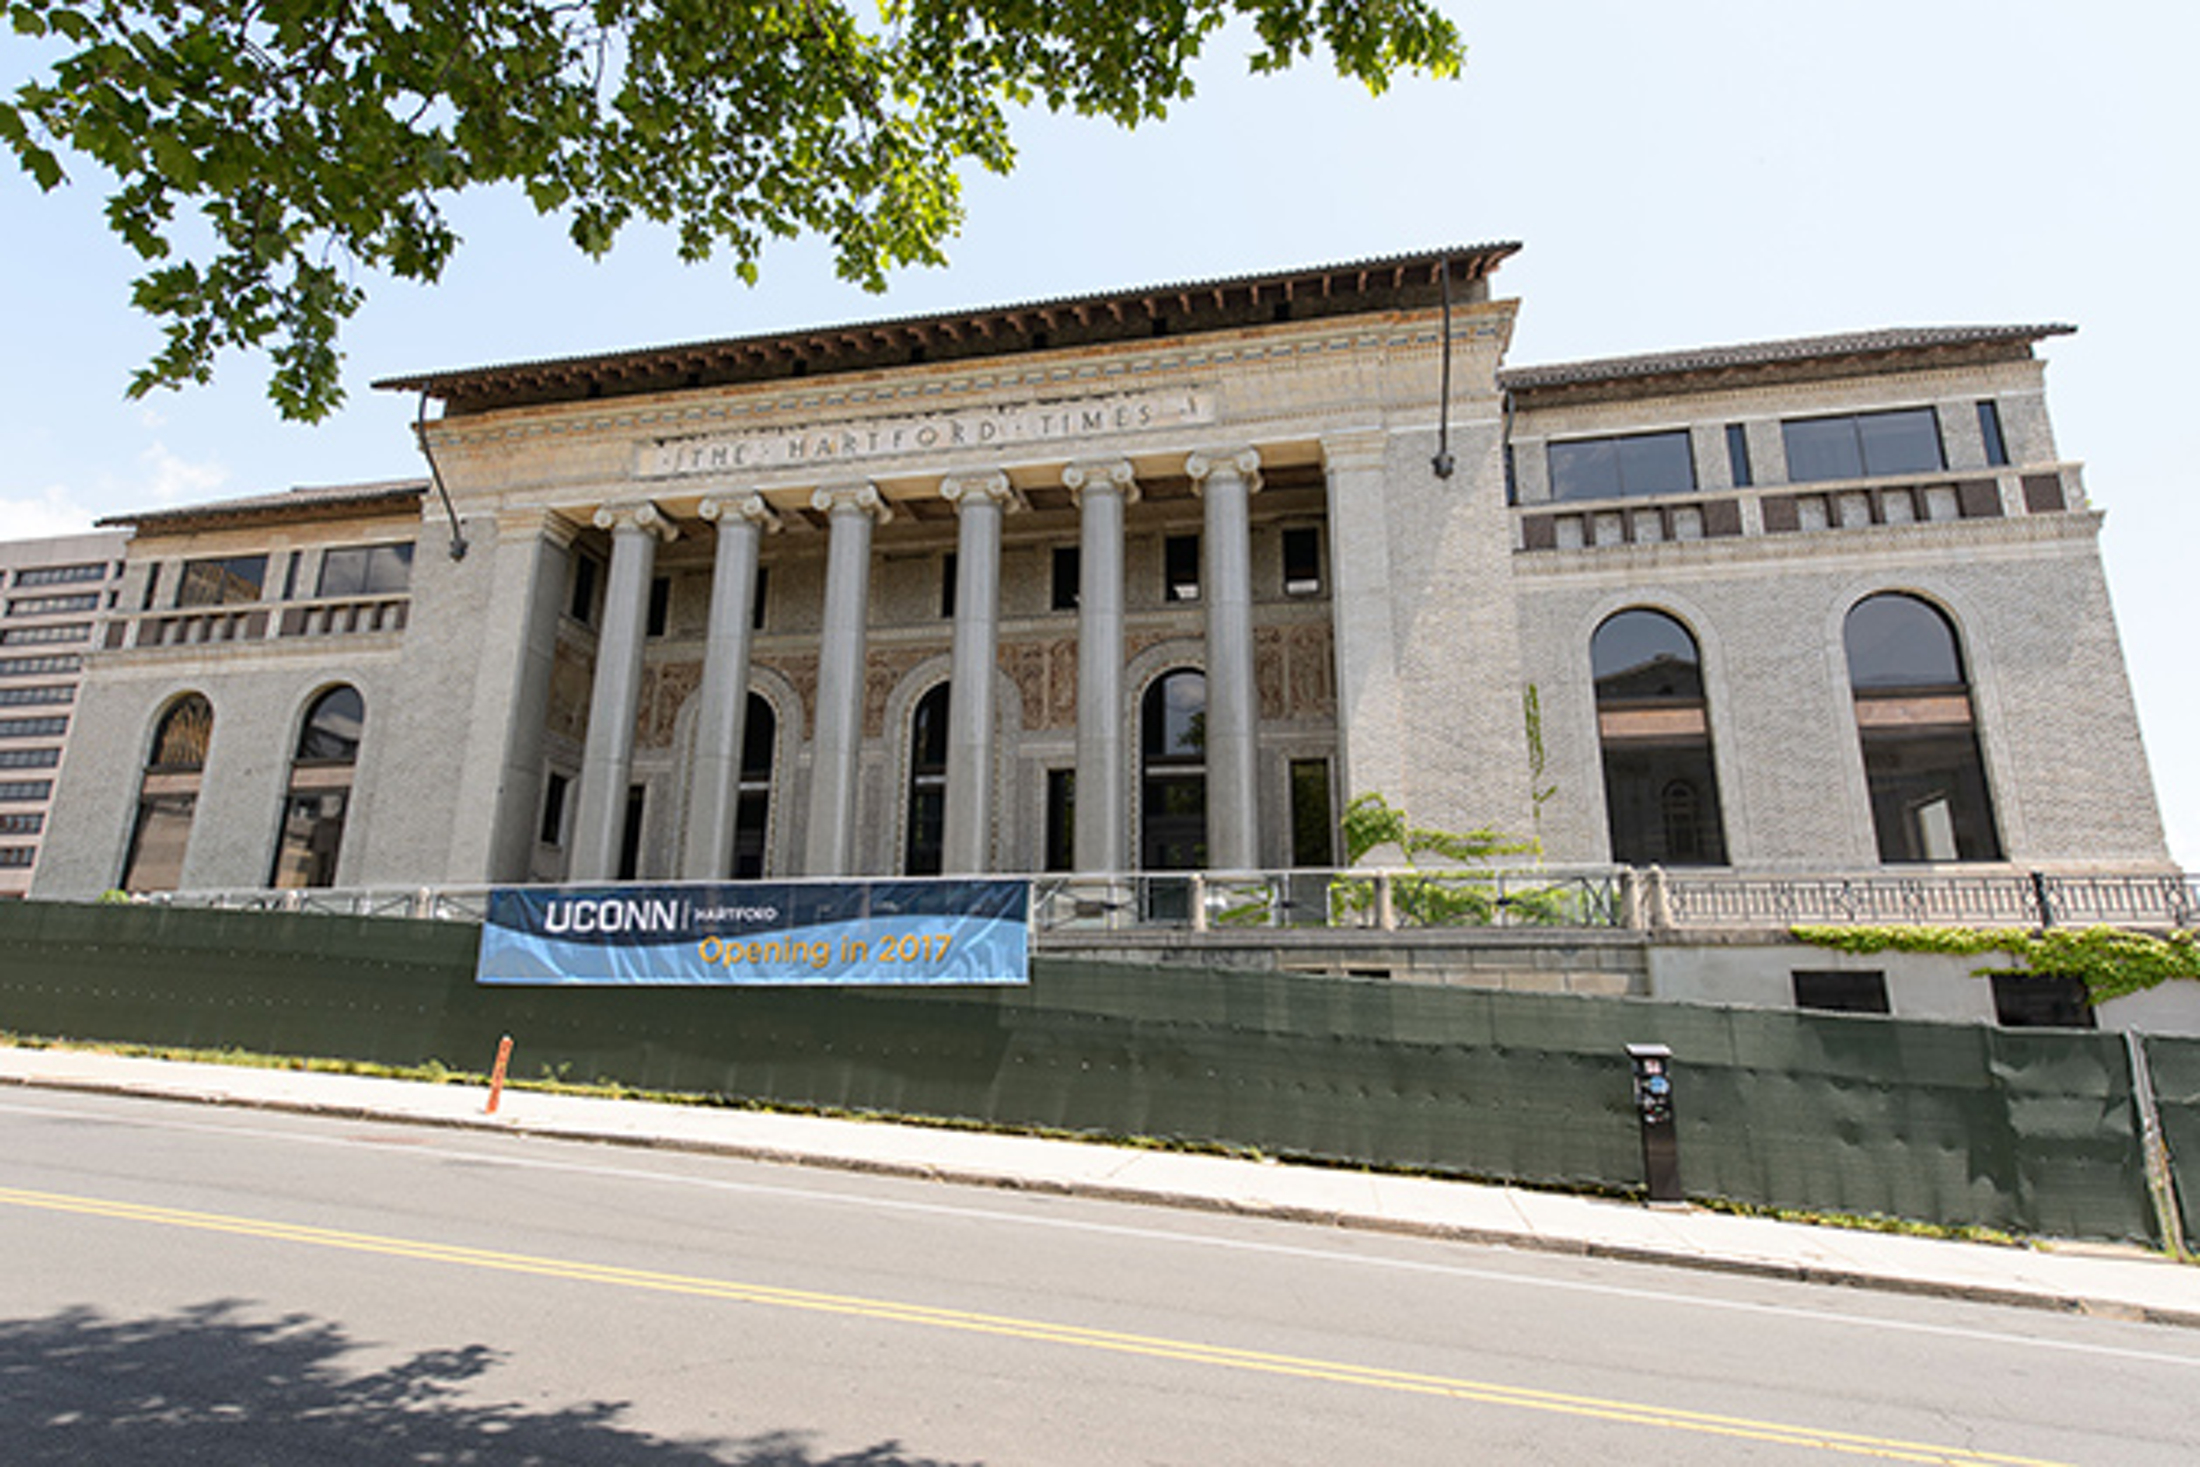 The new downtown Hartford campus will be built at the former Hartford Times buidling. The study was done at the School of Social Work at the Greater Hartford UConn campus. (Courtesy/UConn Today)